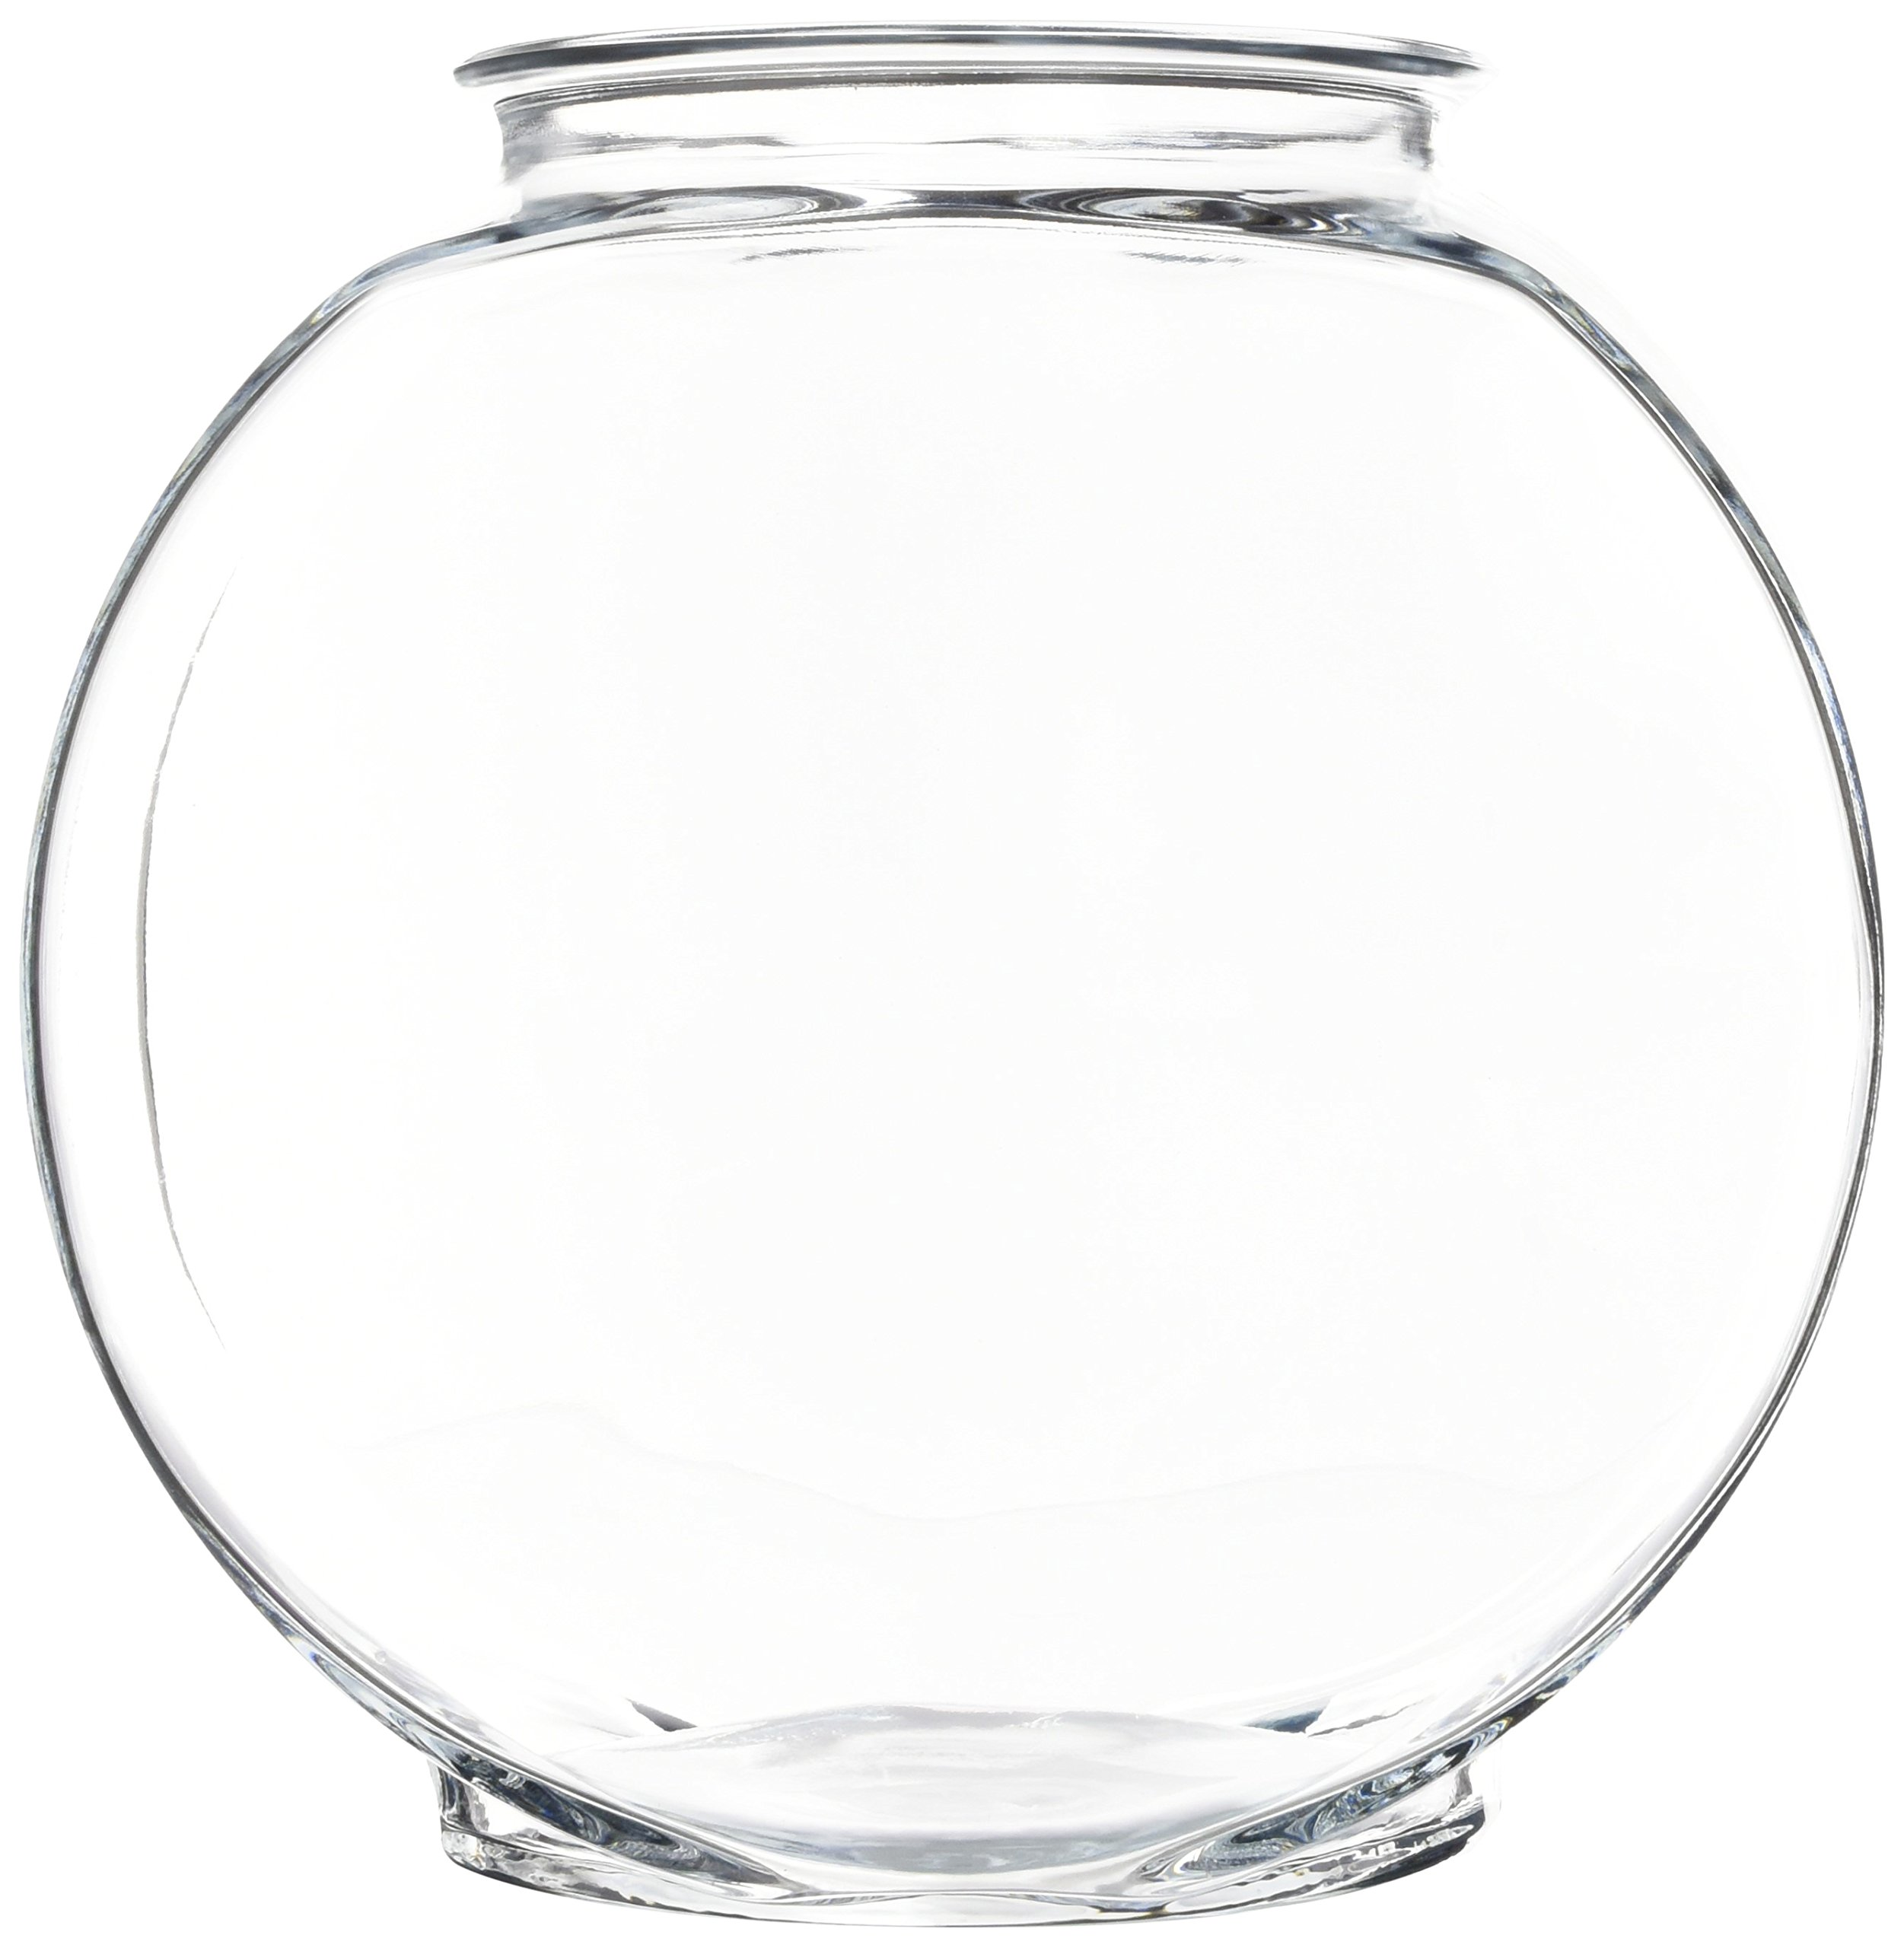 Anchor Hocking 4262 Goldfish Bowl Drum, 1 Gallon by Anchor Hocking